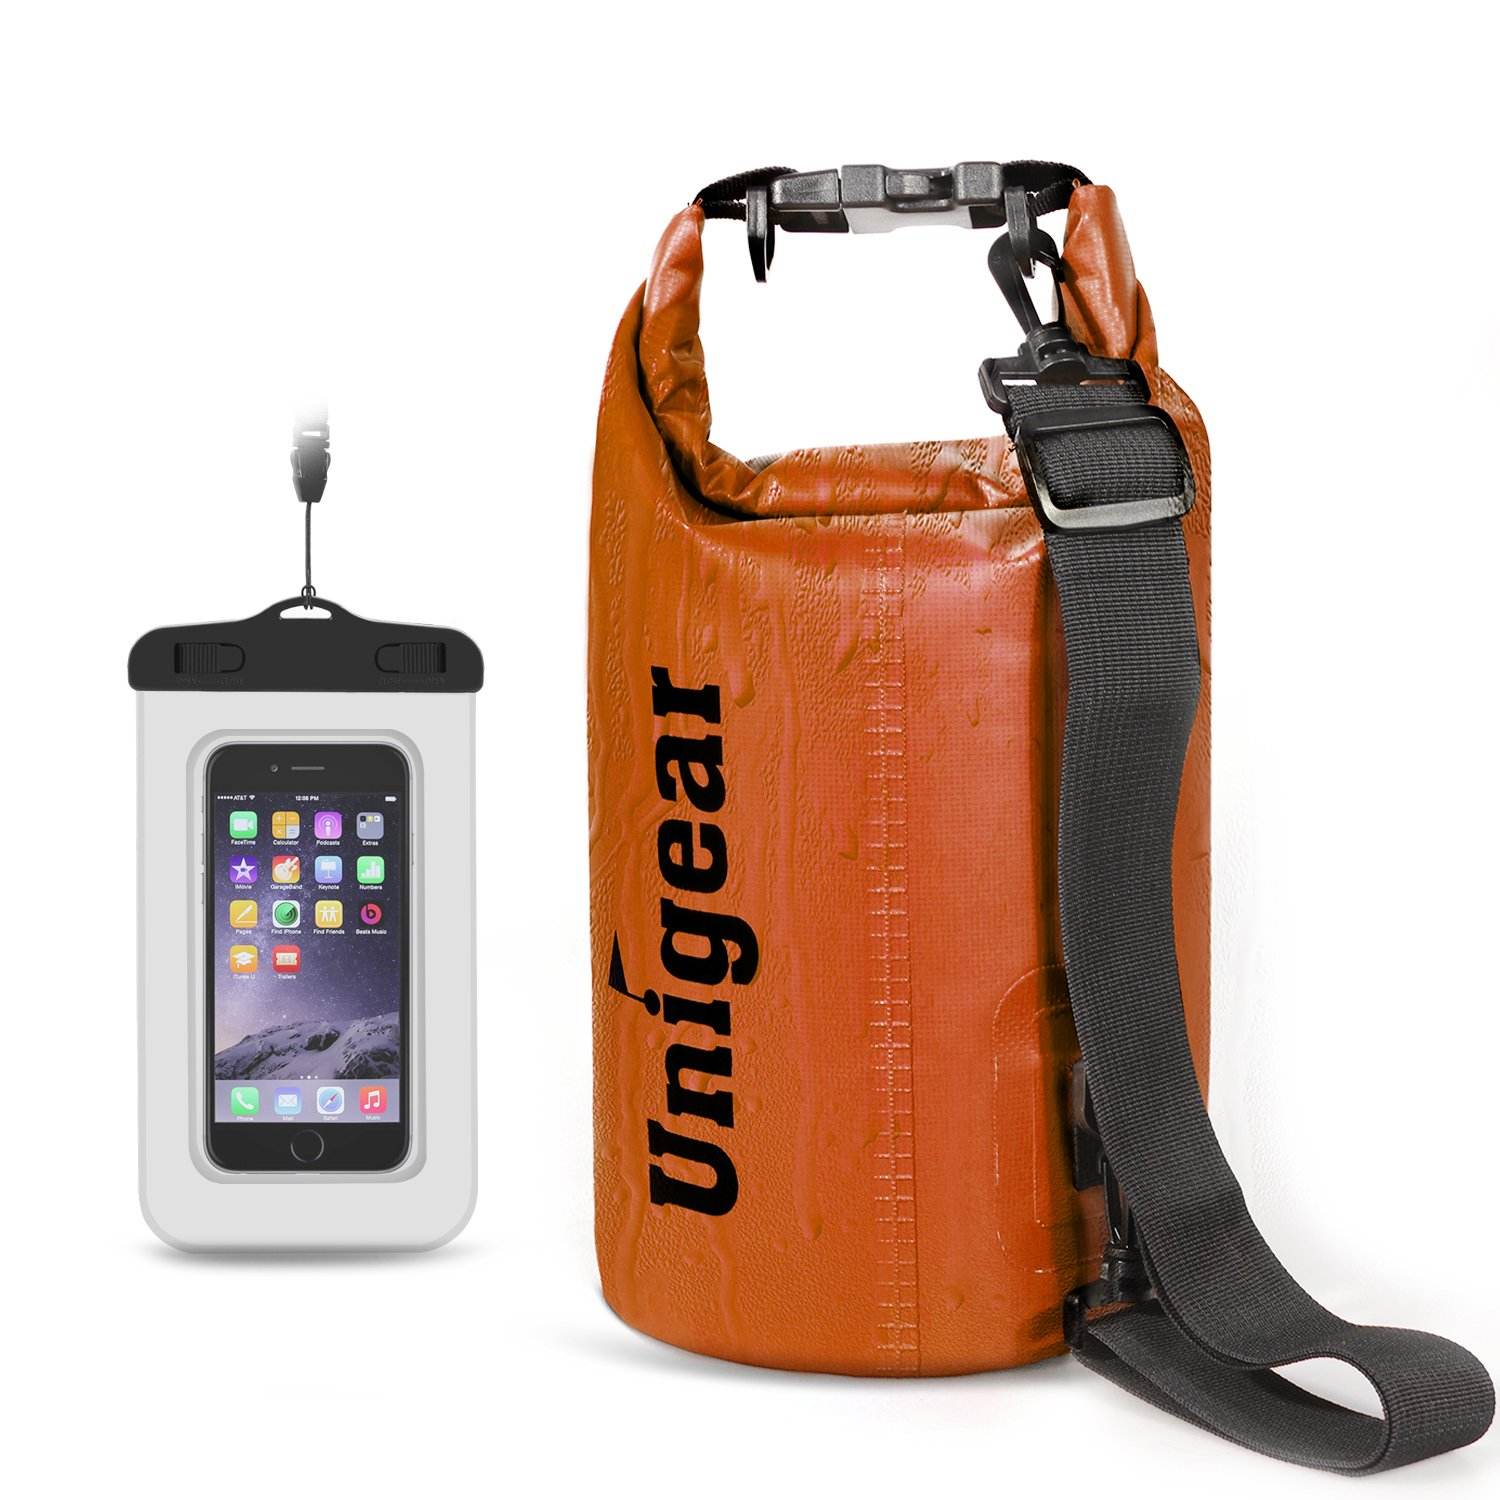 Unigear Dry Bag Waterproof, Floating and Lightweight Bags for Kayaking, Boating, Fishing, Swimming and Camping with Waterproof Phone Case, 2L/5L/10L/20L/30L/40L by Unigear